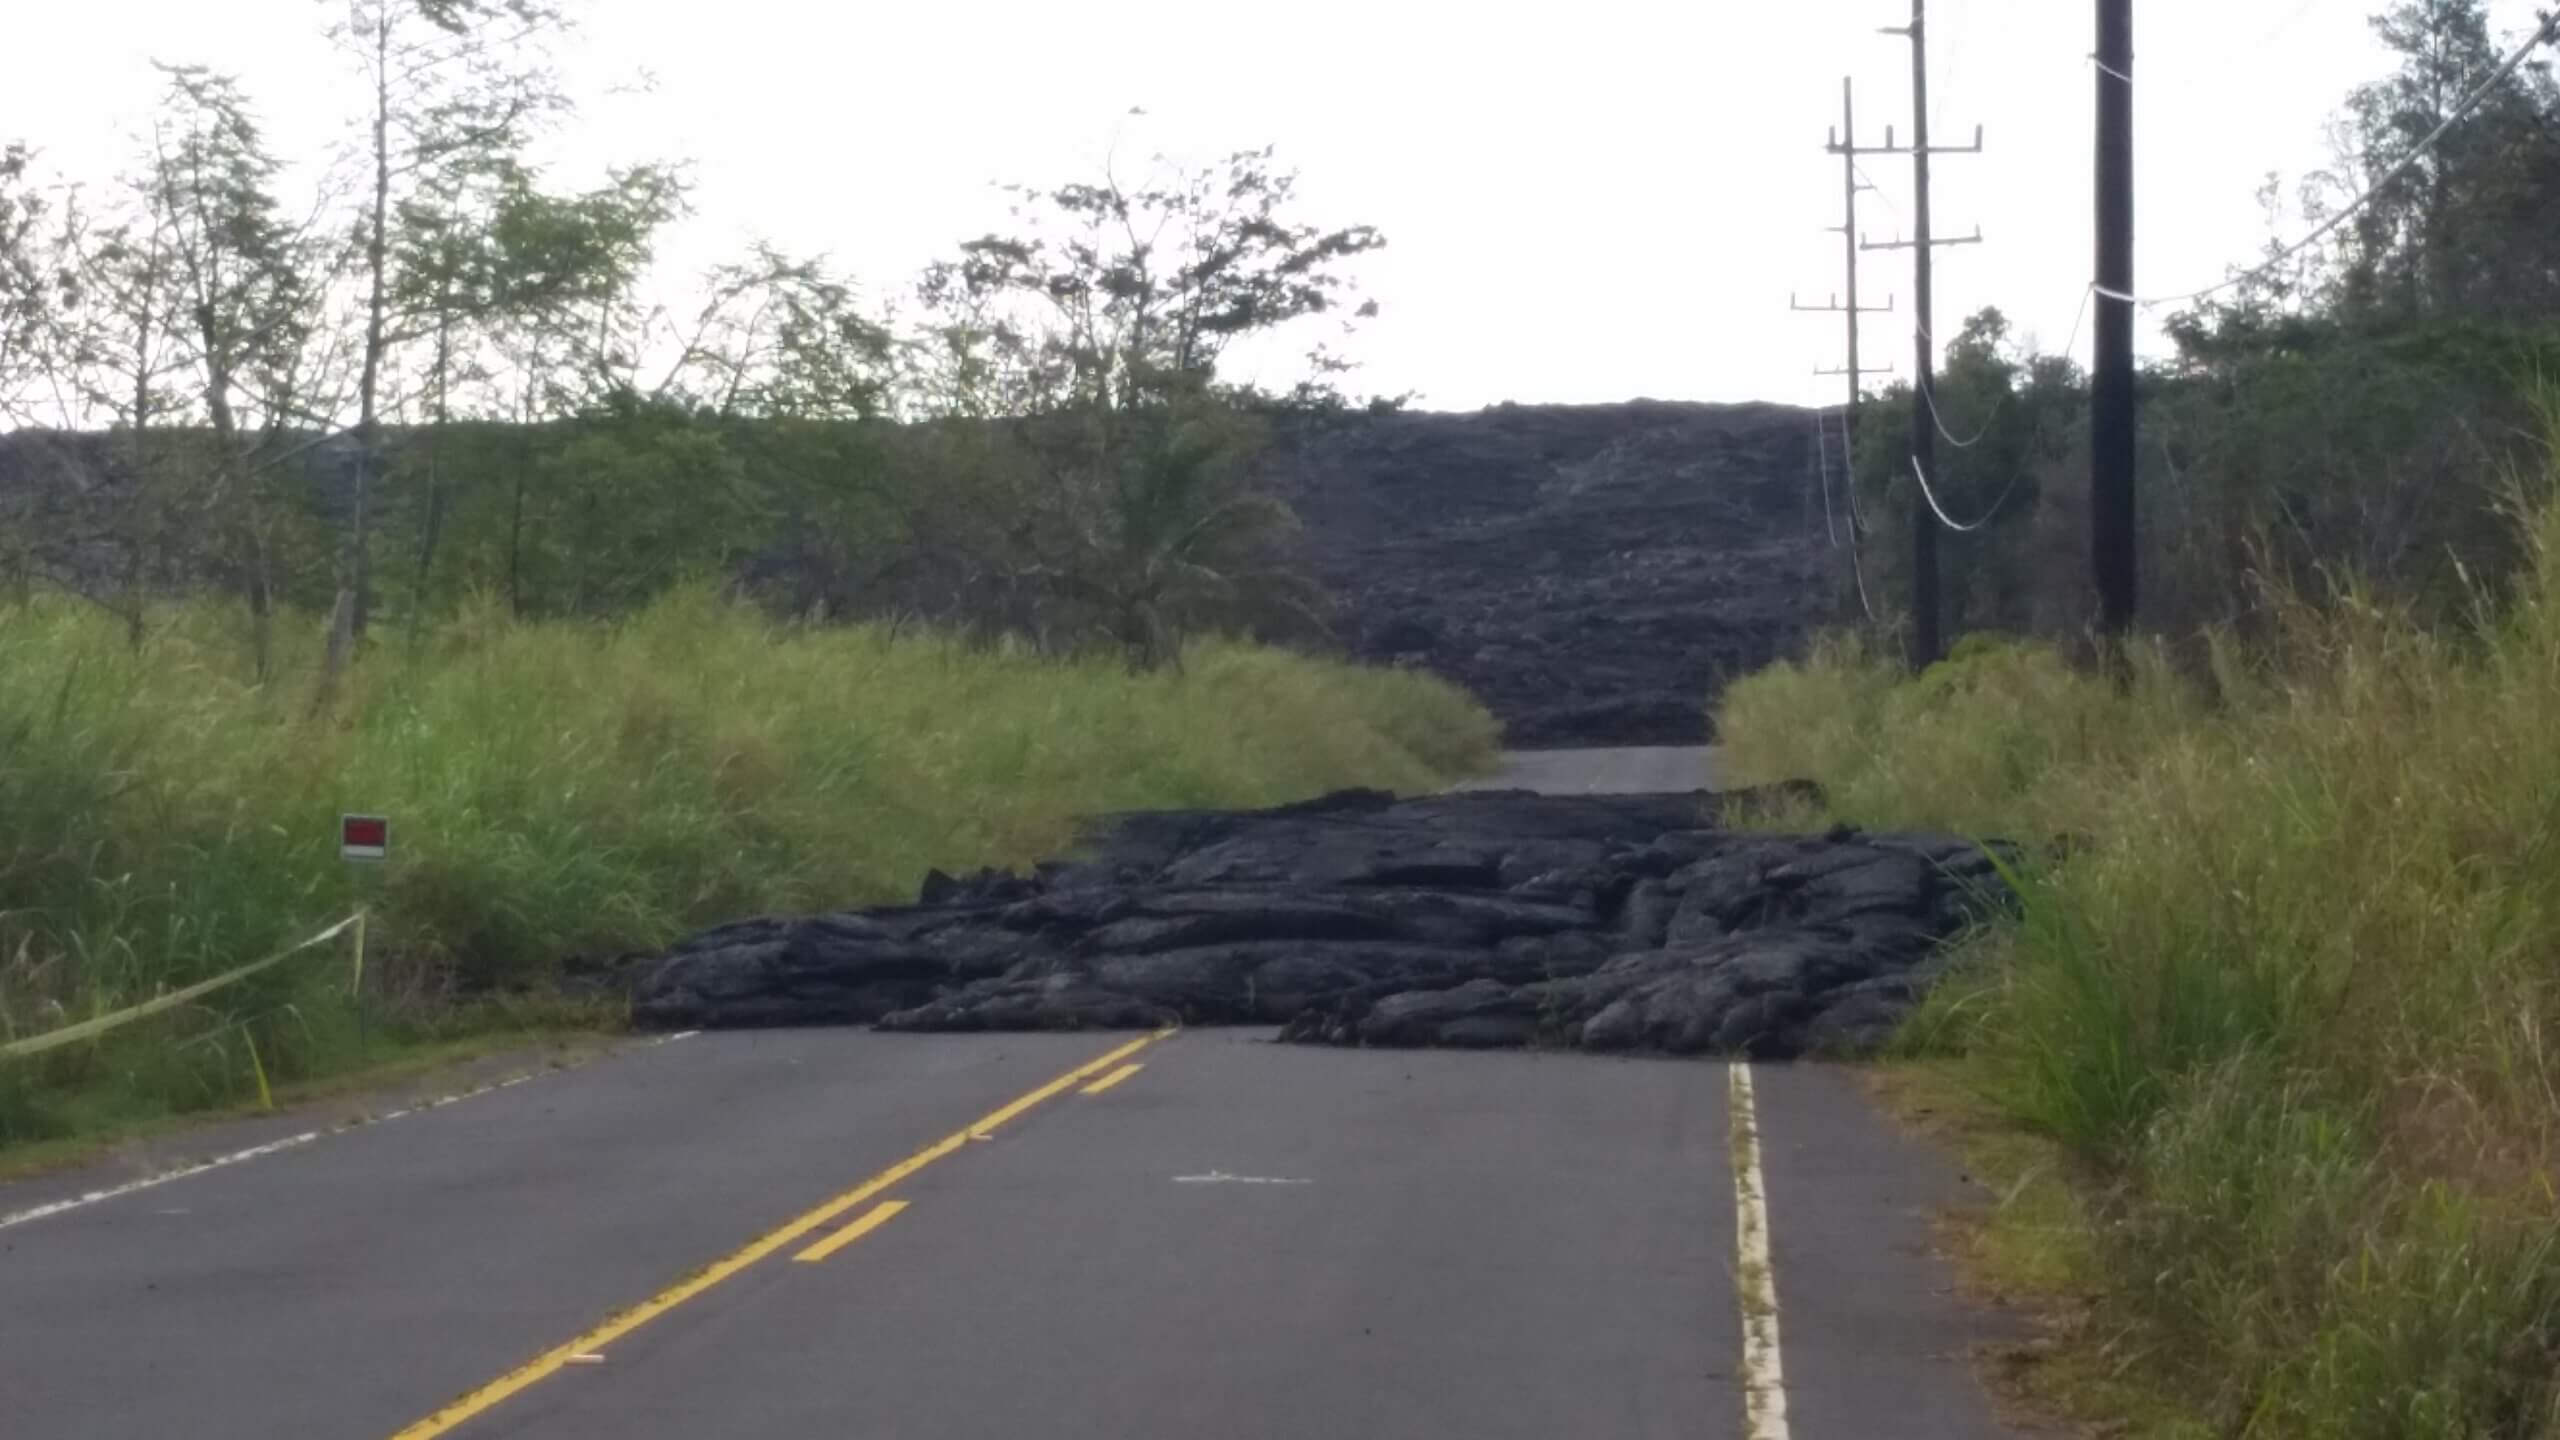 Lava across the road, Hawaii